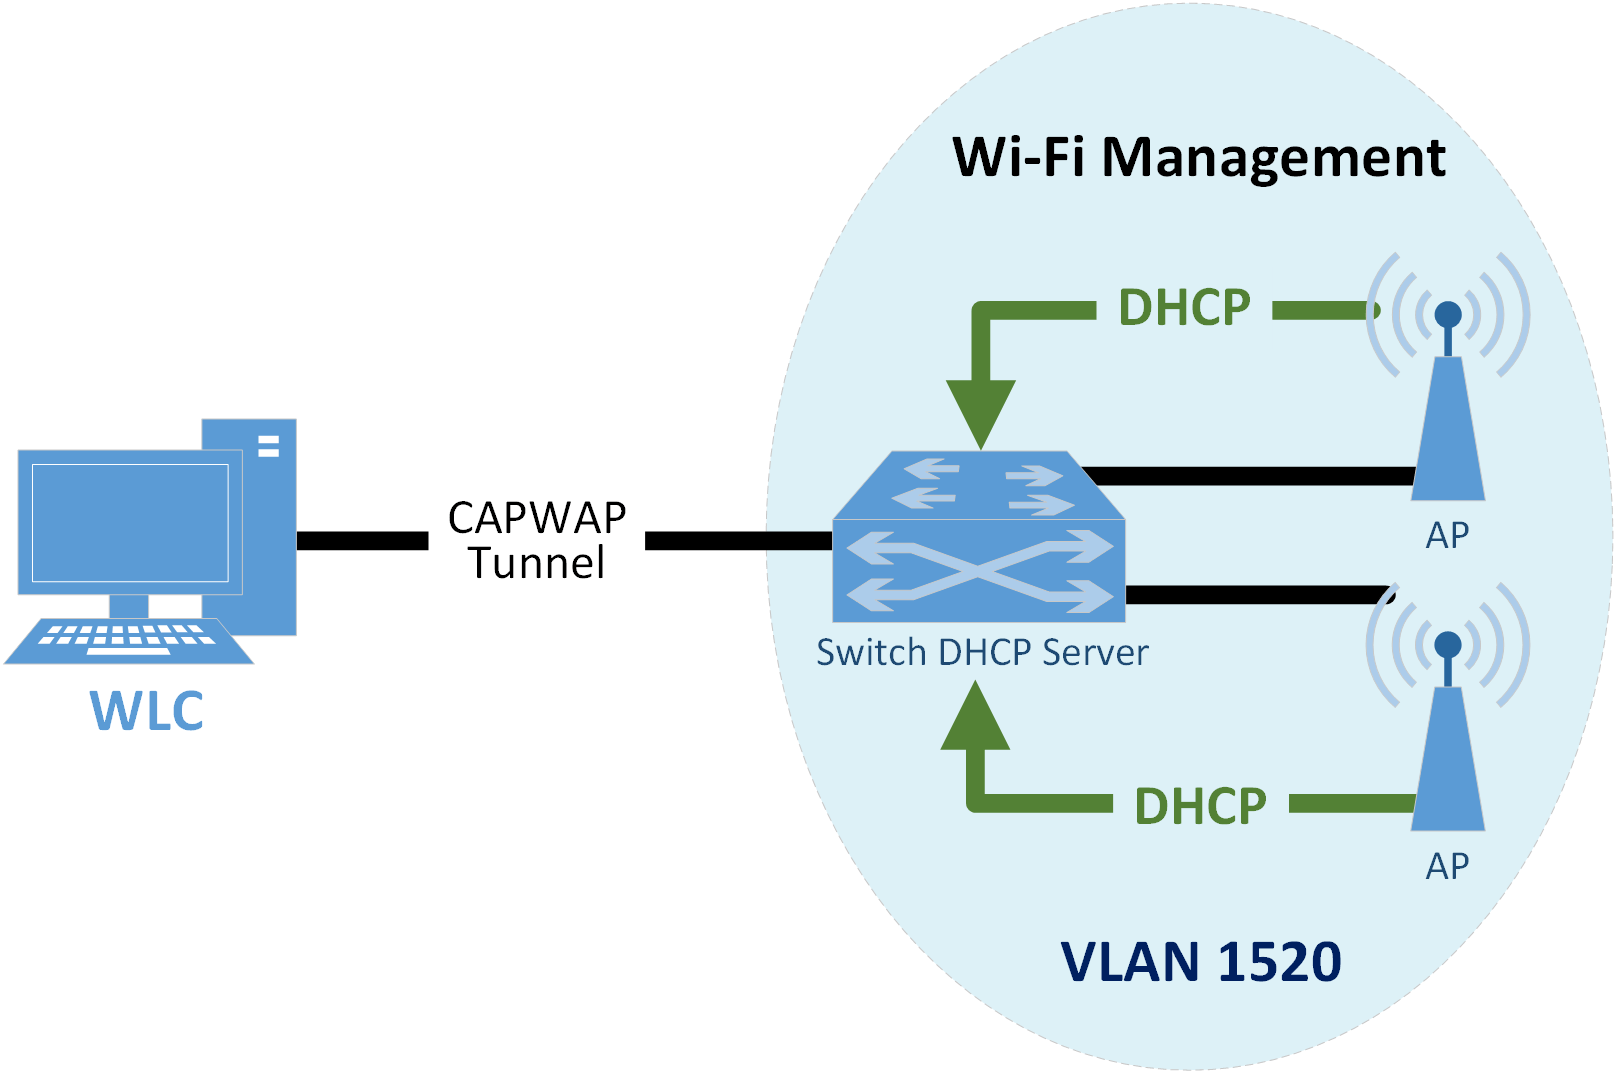 hight resolution of when a device first connects to the wi fi network it needs to authenticate with either the agreed upon psk or certificate the authentication process is